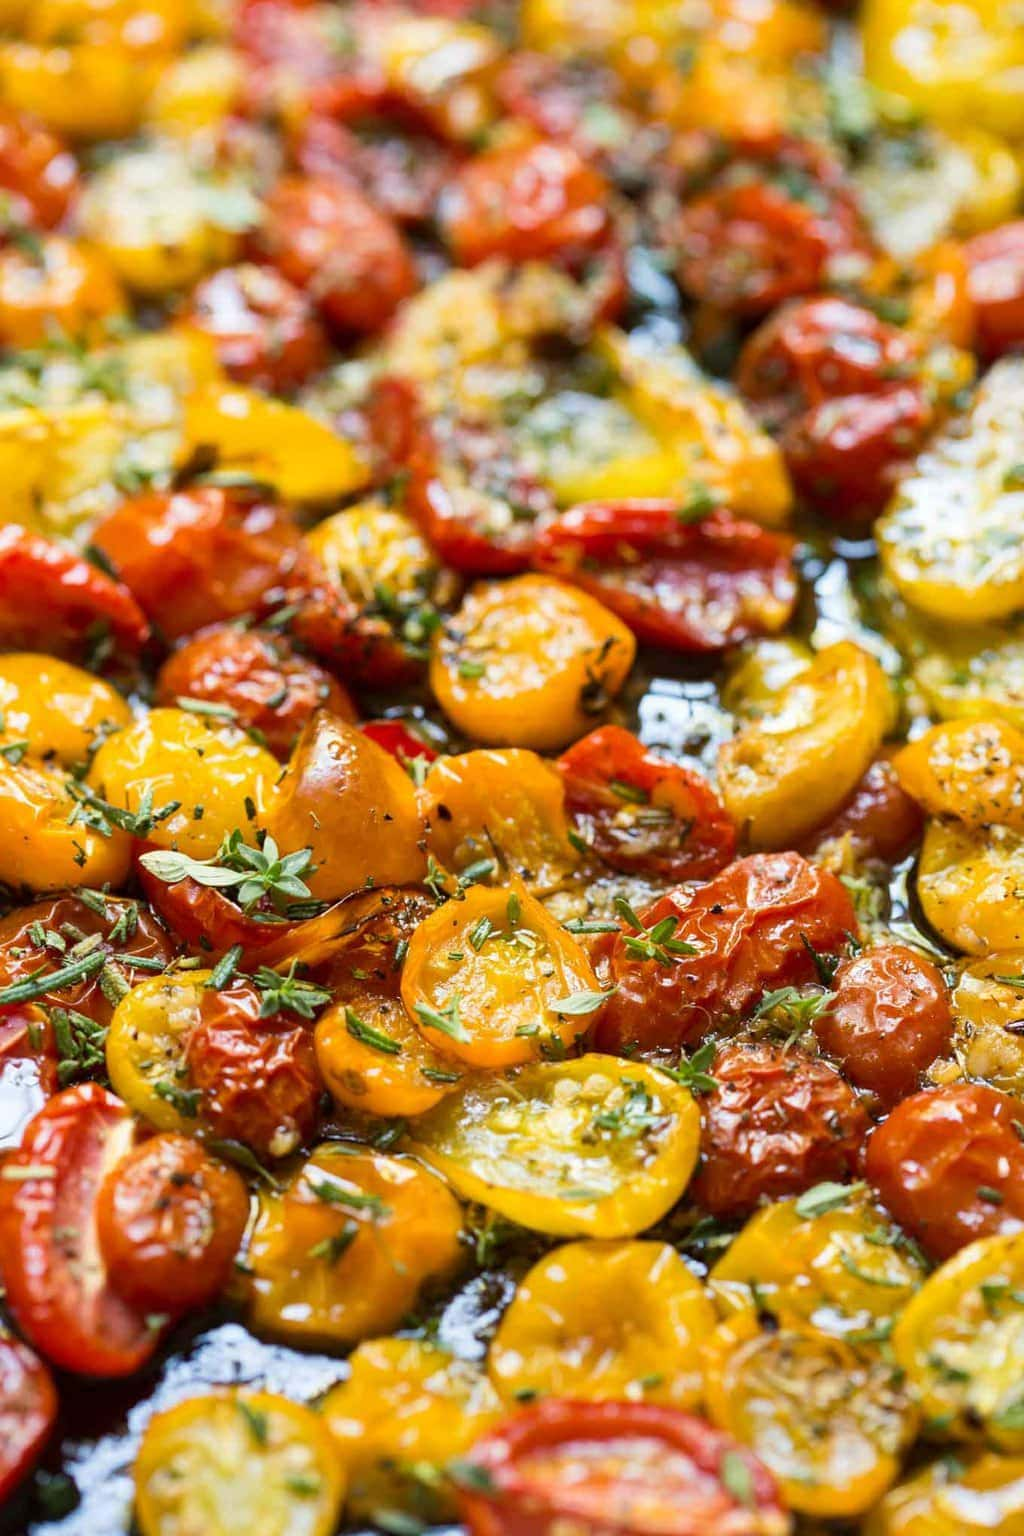 Garlic Herb Roasted Tomatoes - these incredibly flavorful roasted tomatoes are wonderful in salads, pasta dishes, on pizzas, sandwiches and a myriad of other uses! thecafesucrefarine.com